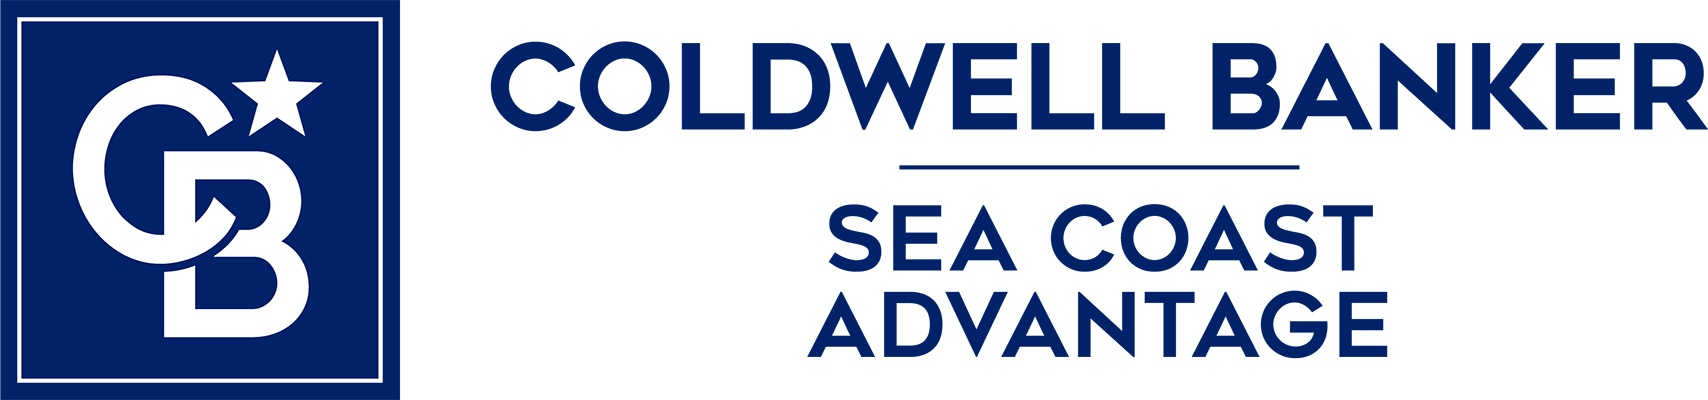 Marian Wright - Coldwell Banker Sea Coast Advantage Realty Logo